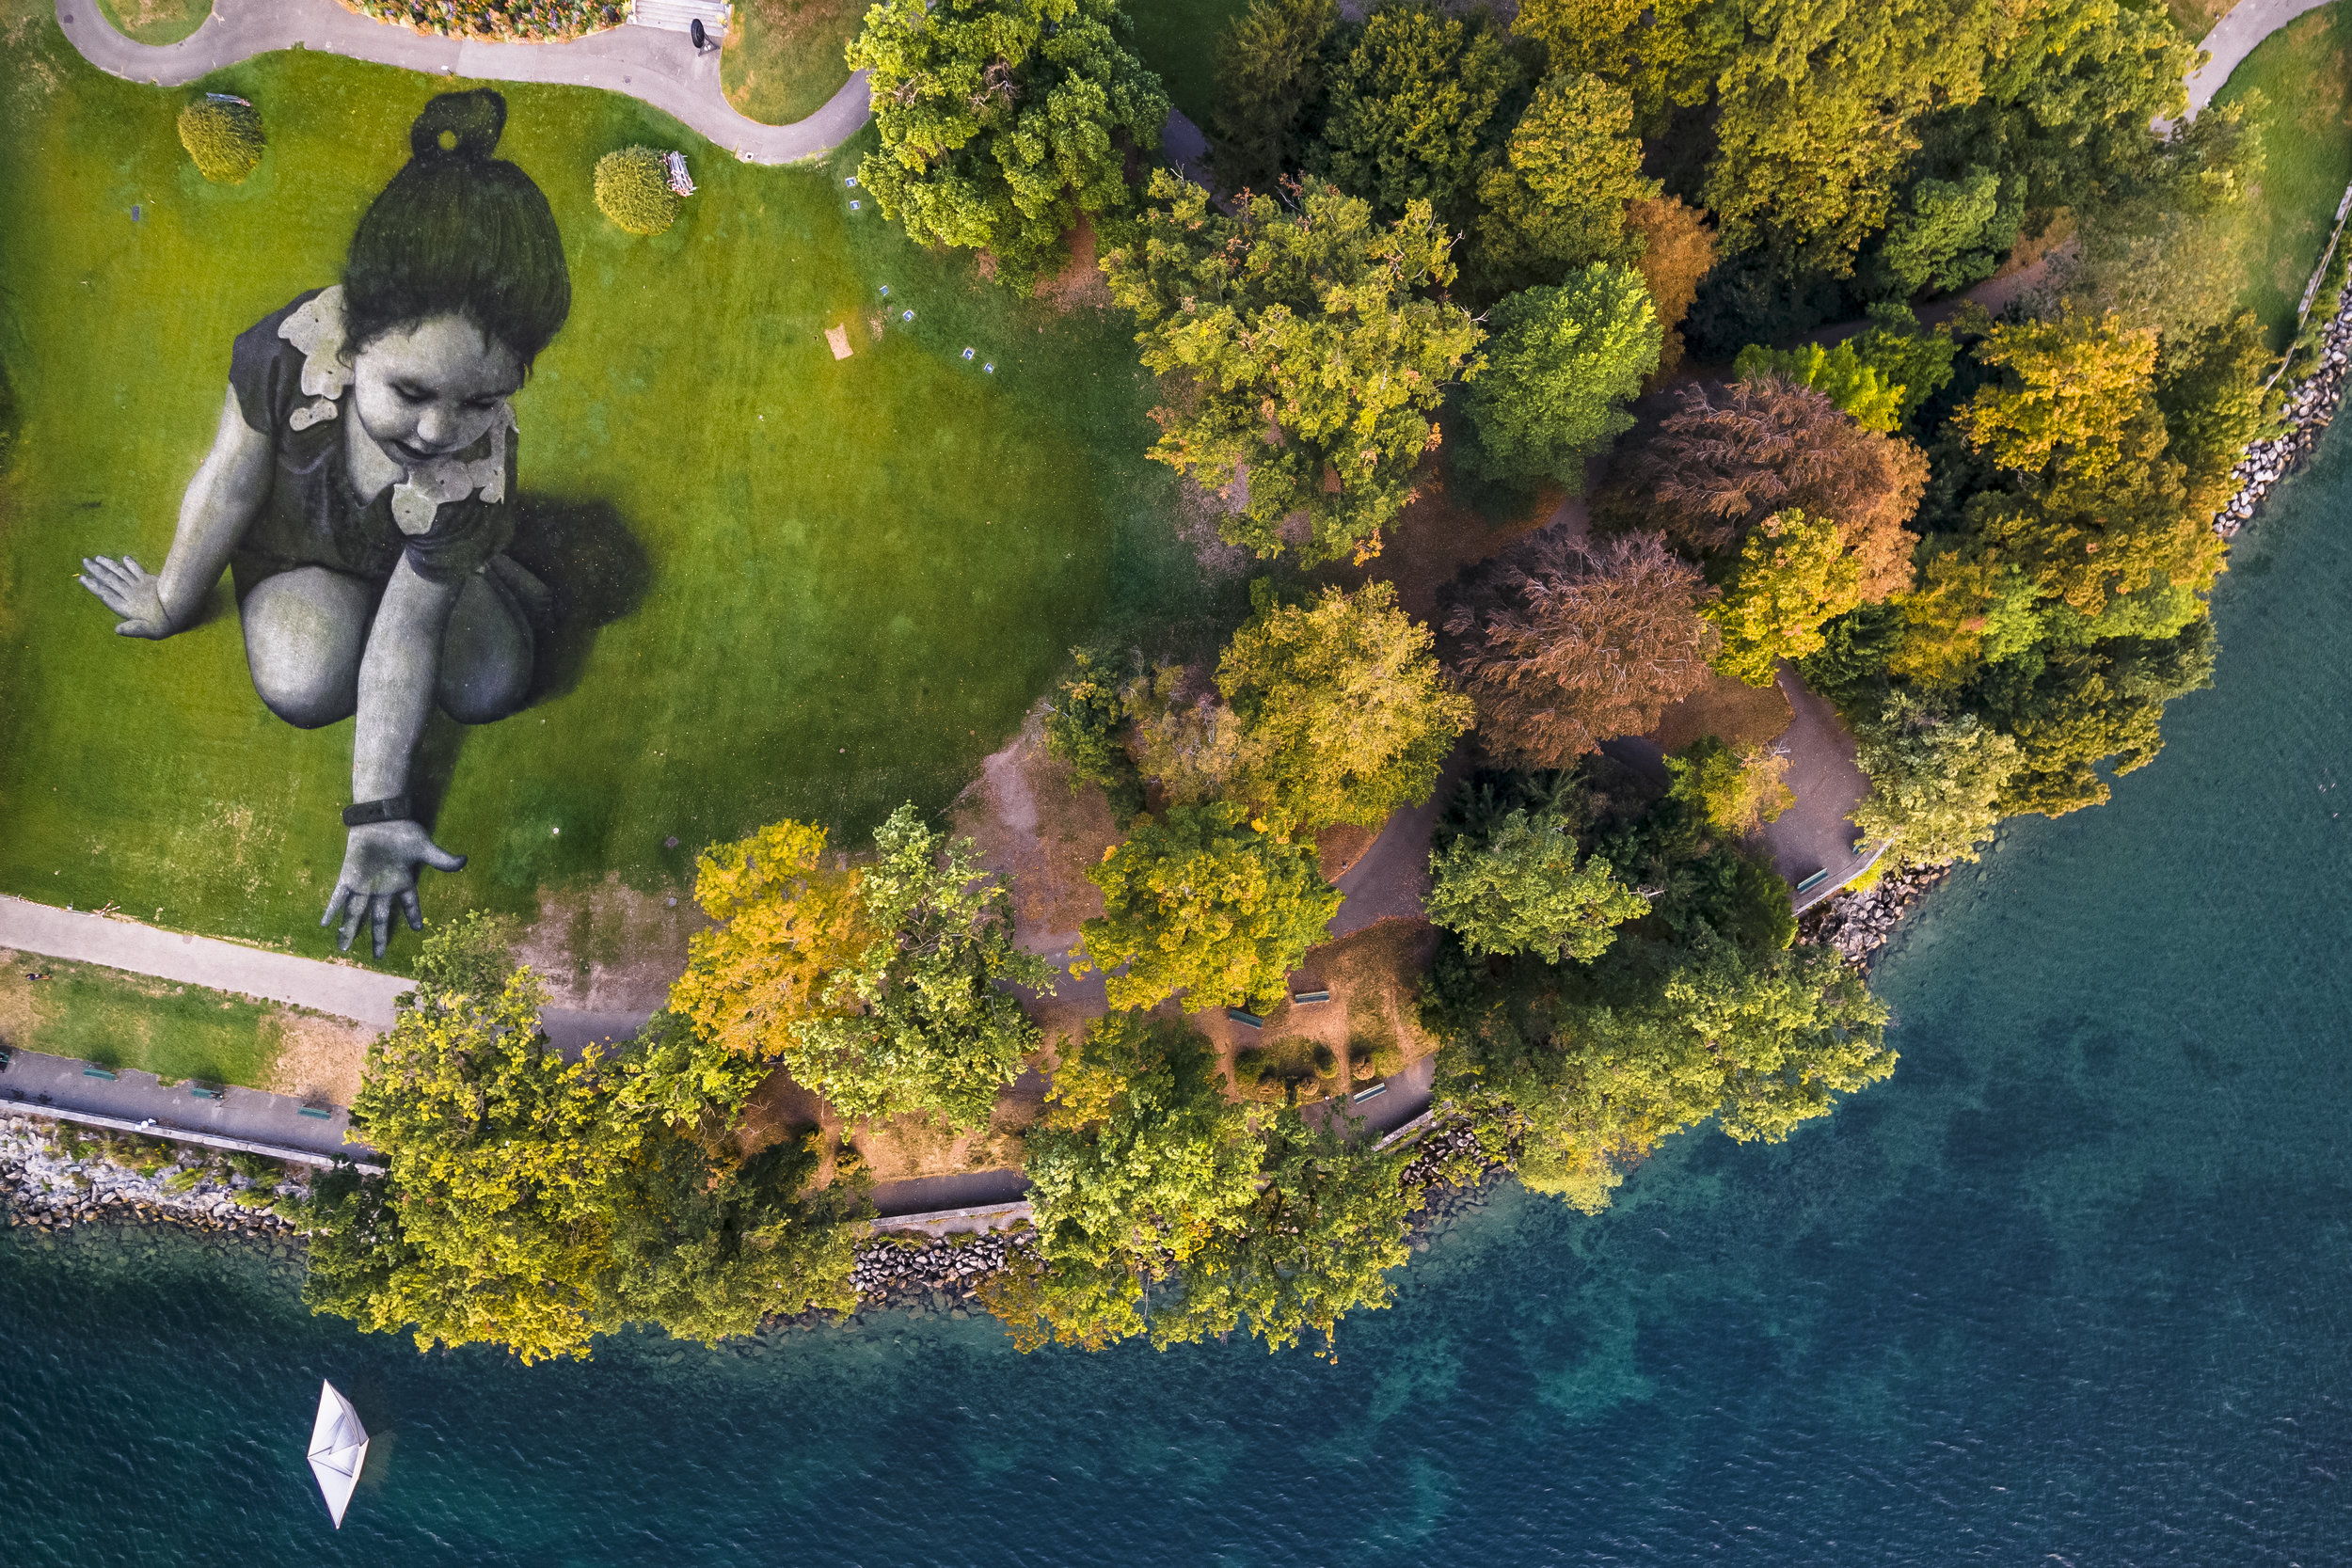 """A giant landart painting entitled """"Message From Future"""" by French artist Saype, is pictured in the park """"La Perle du Lac"""" in Geneva, Switzerland, Sunday September 16, 2018. The artwork covering 5000 square meters was produced with biodegradable paints made from natural pigments. The artist called the little girl """"Future"""" as a symbol of the generations from the future and the small origami boats that she drops into Lake Geneva aims to represent a message of hope sent to the world. (KEYSTONE/Valentin Flauraud)"""